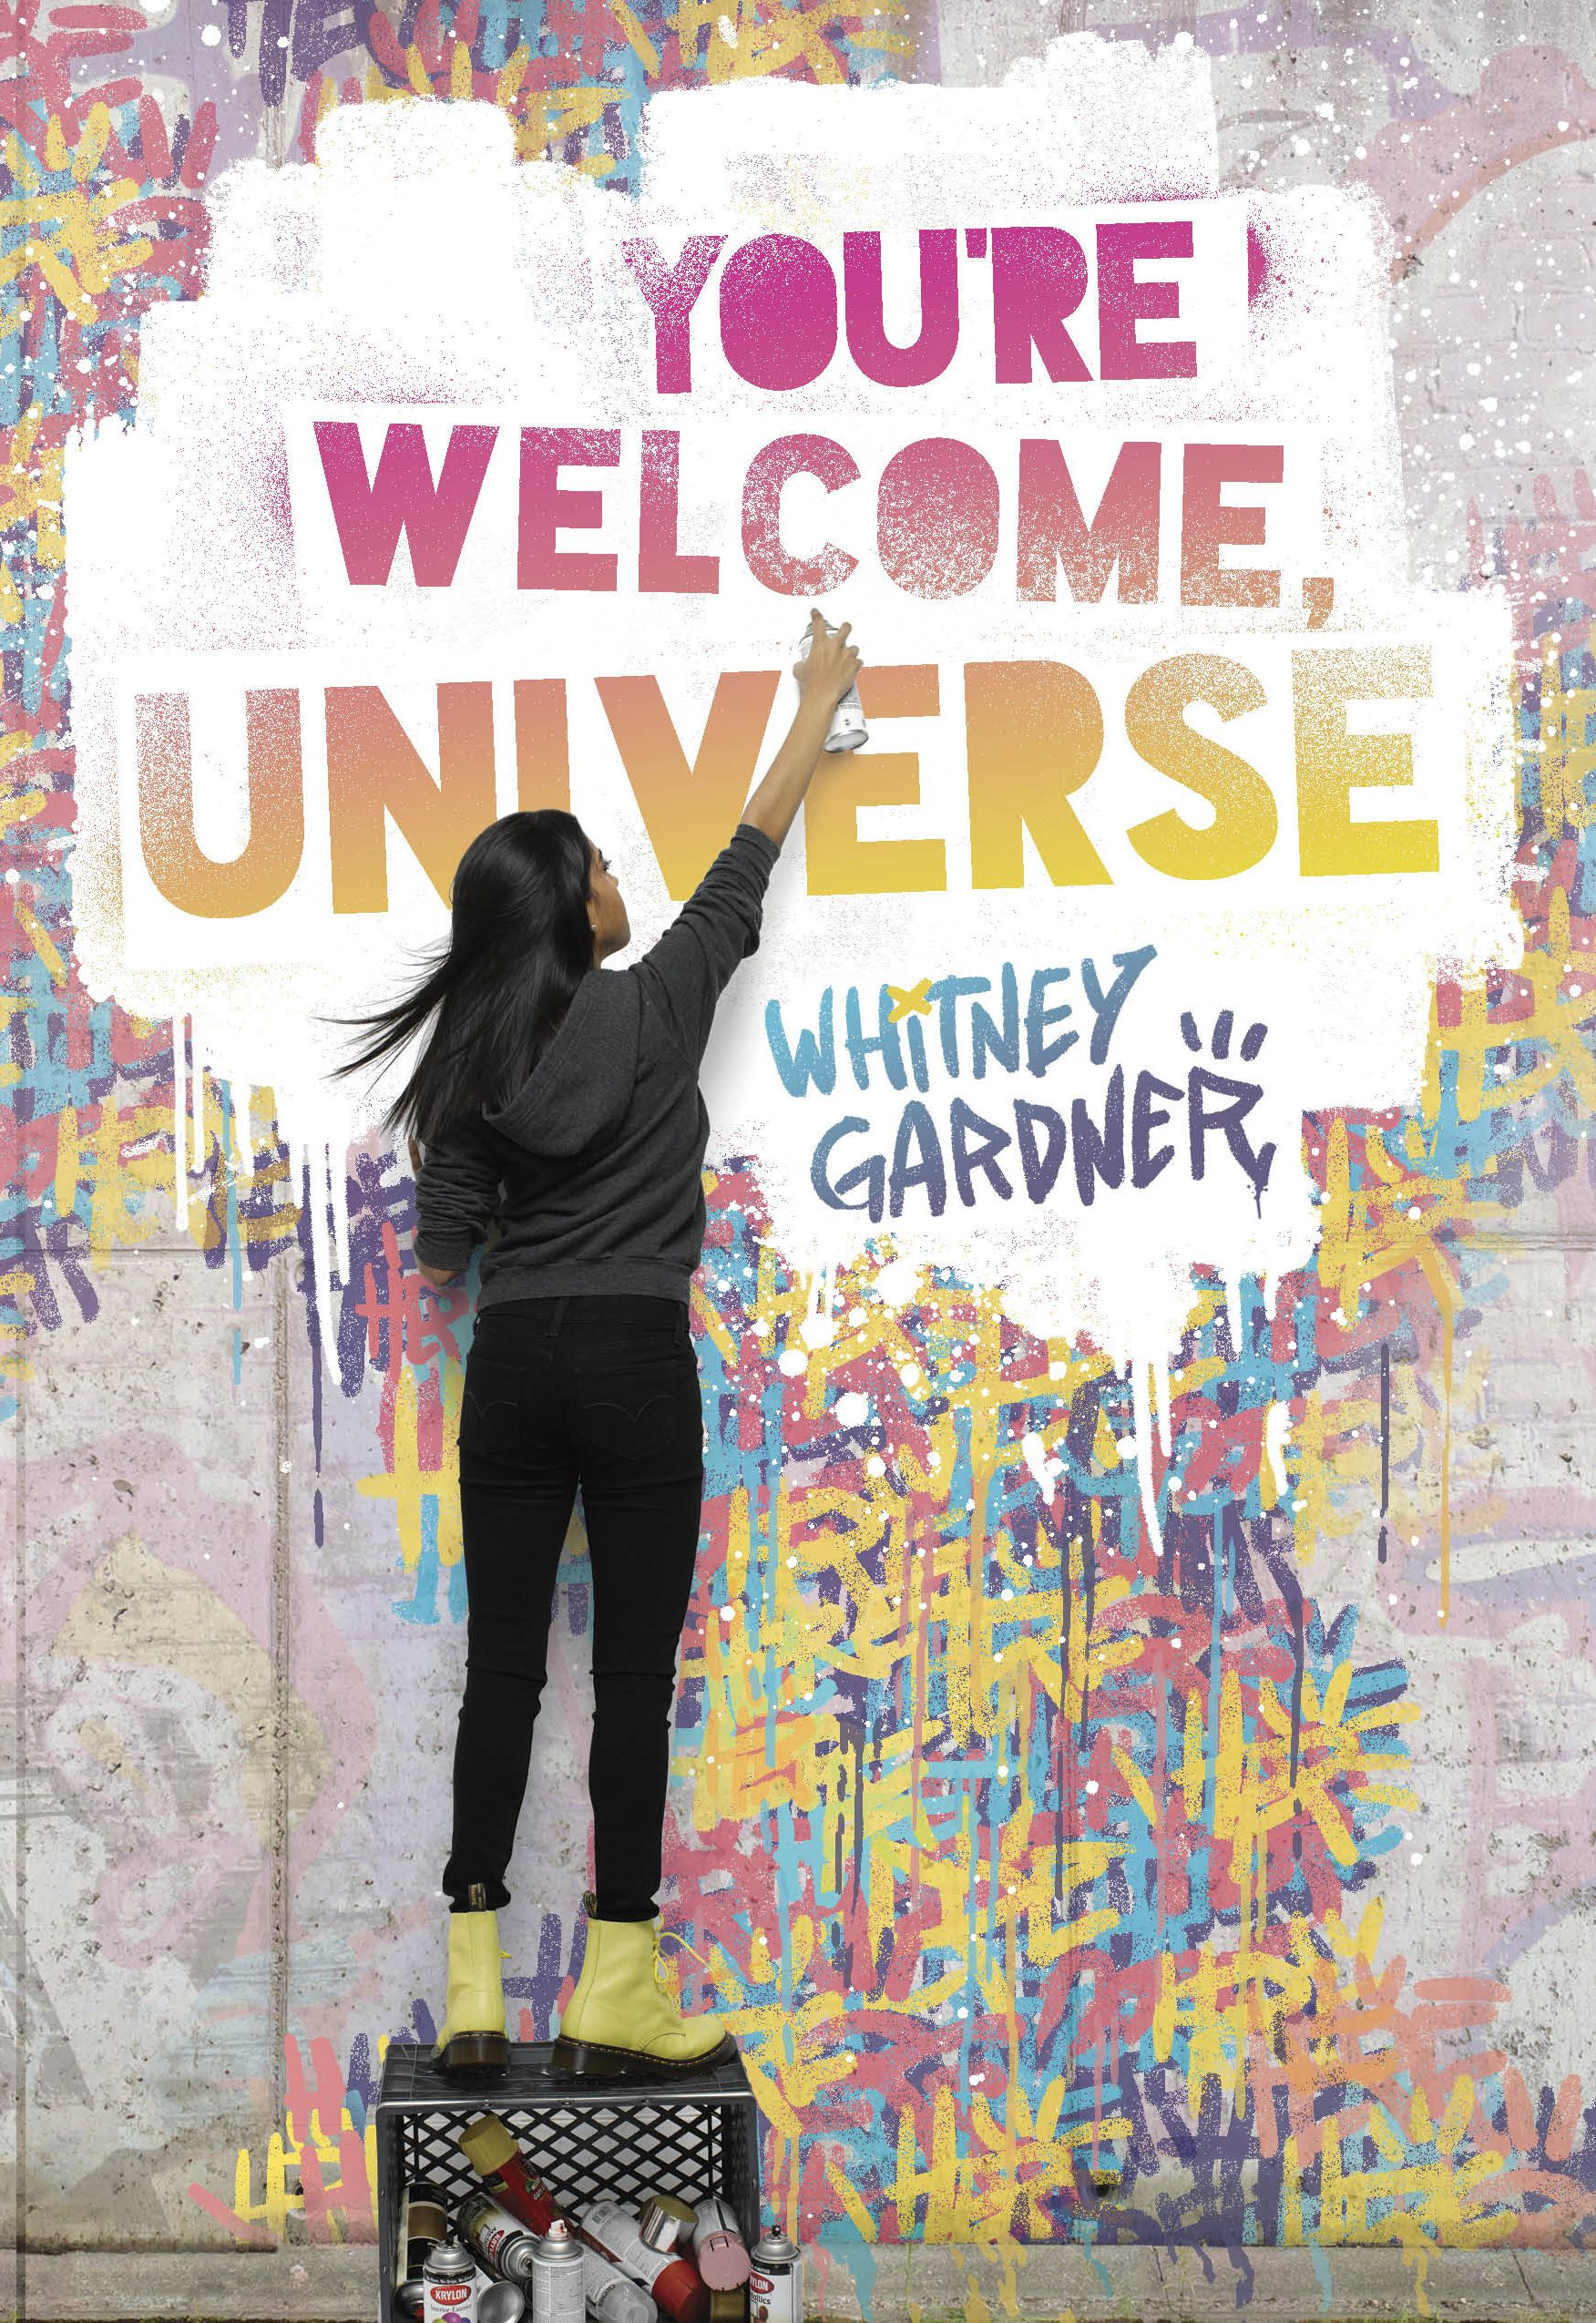 Successful Query Whitney Gardner  YouRe Welcome Universe